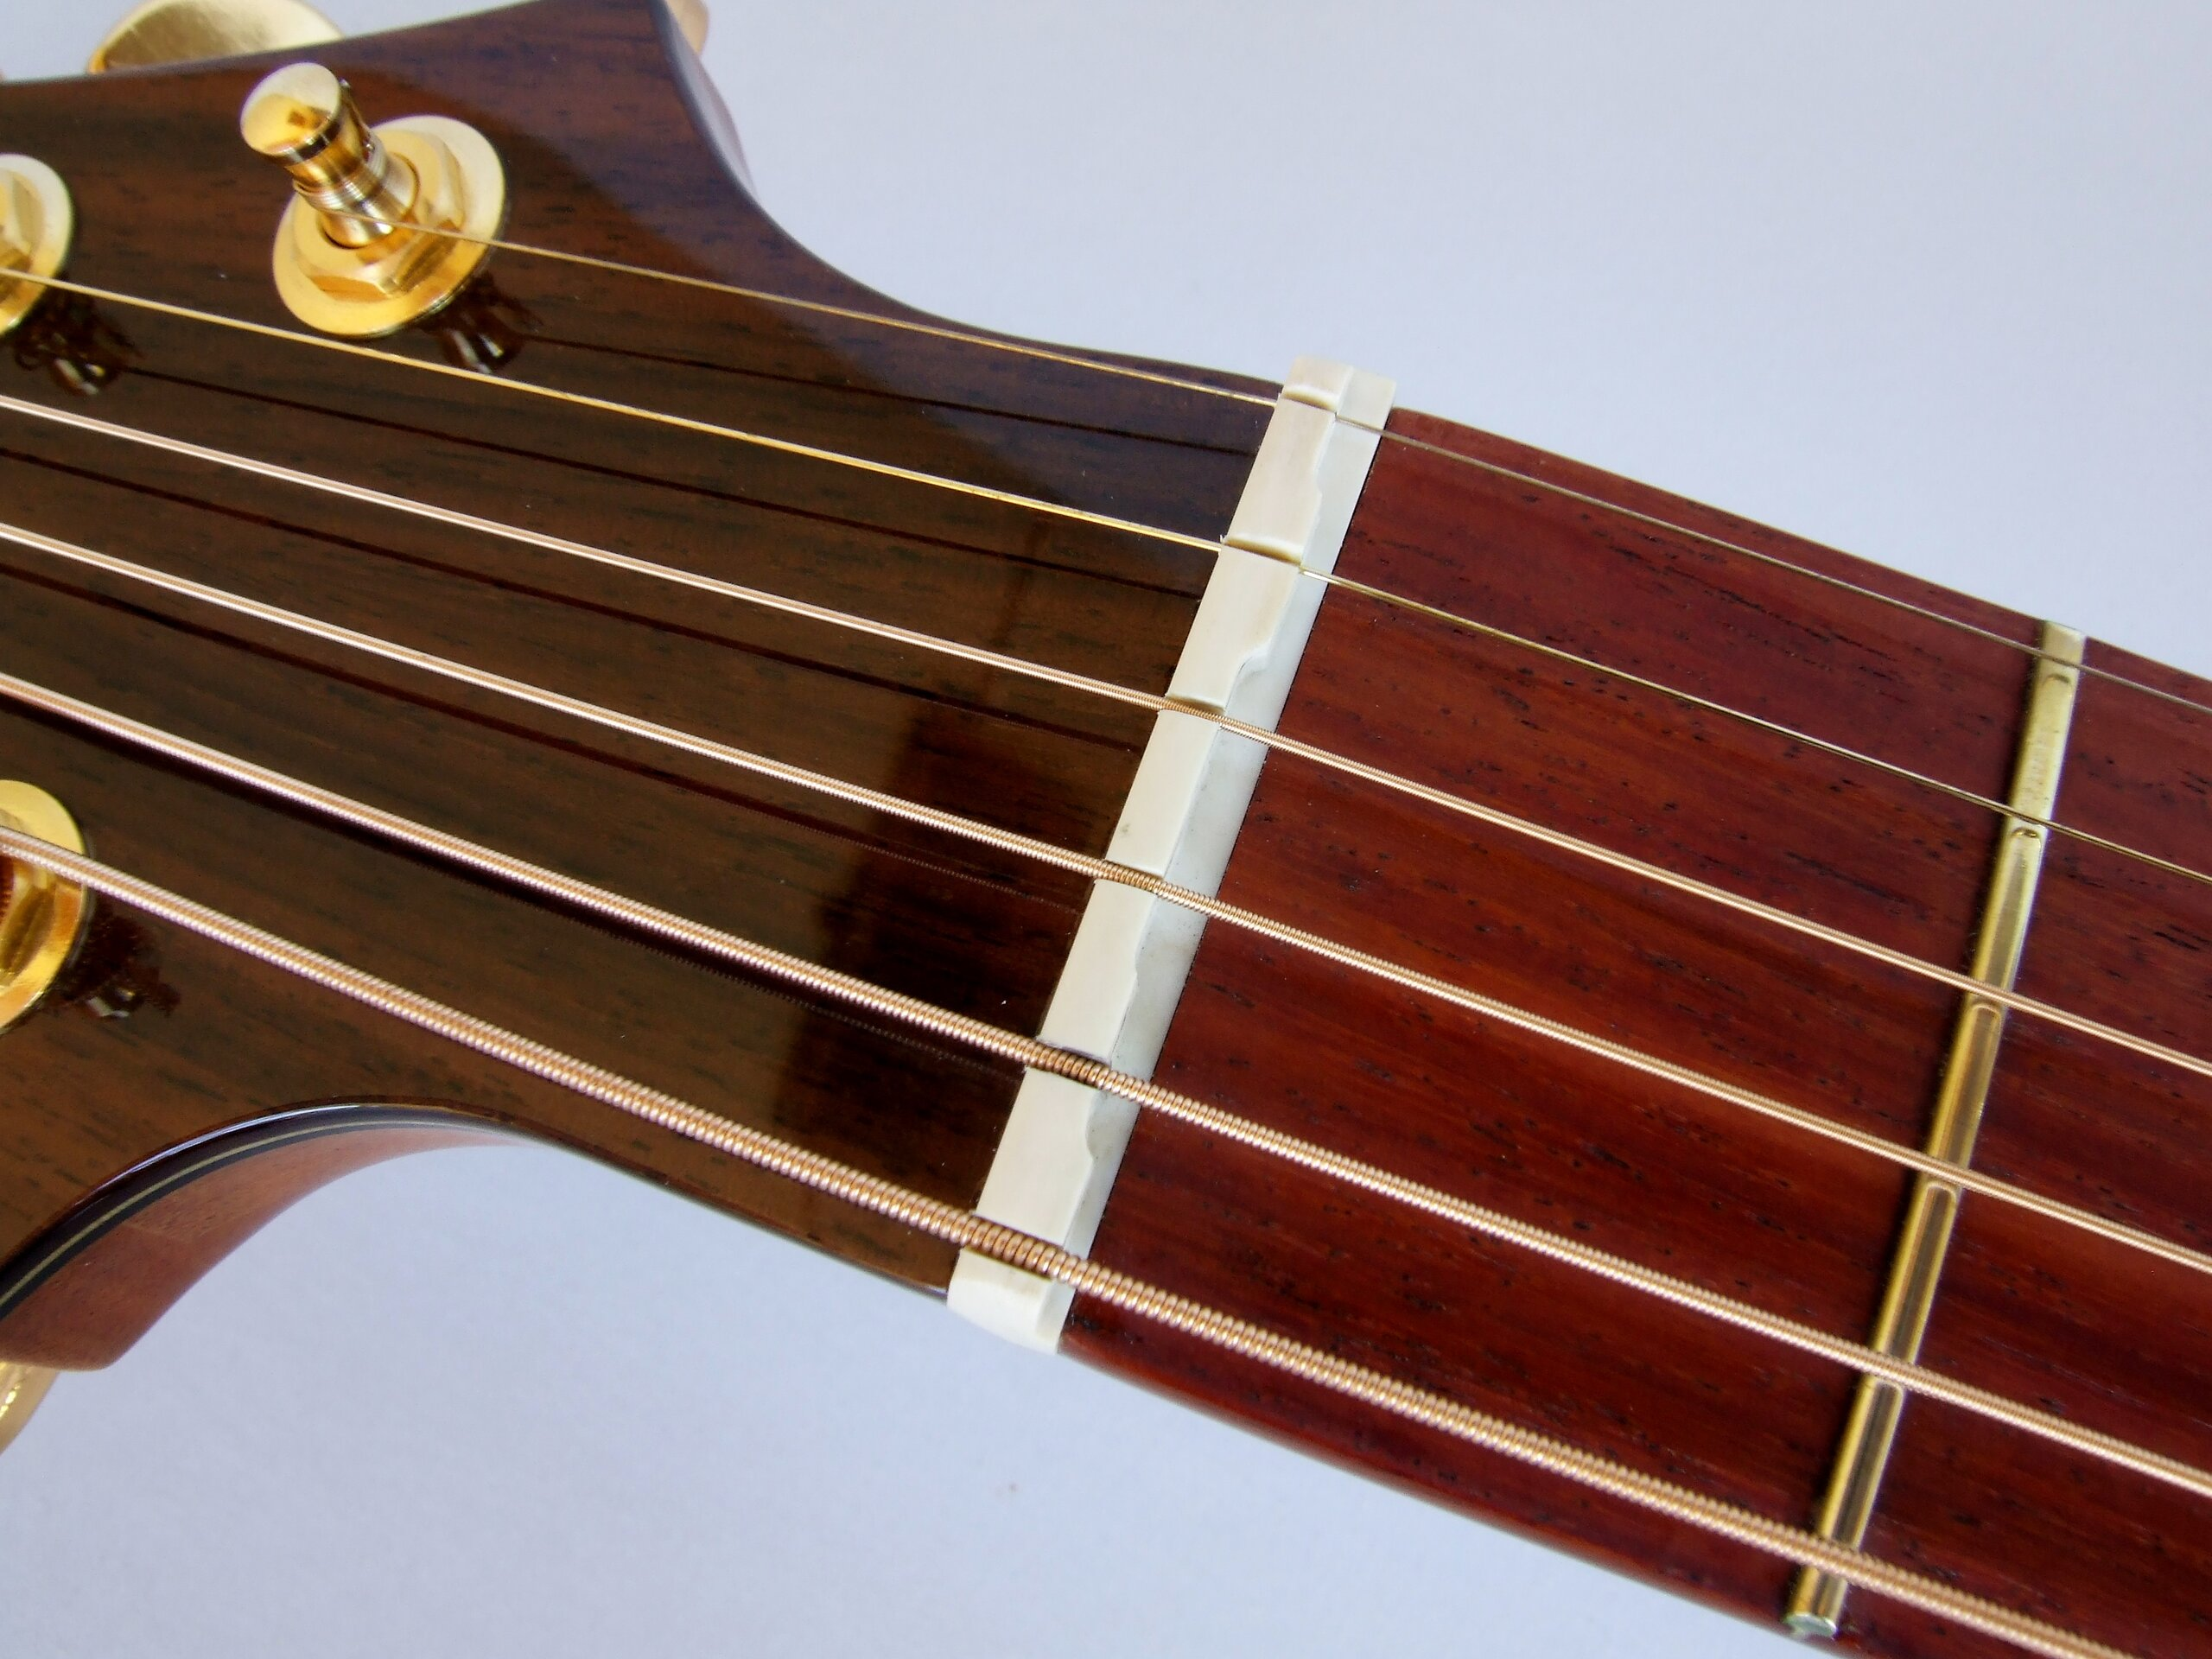 Detail of compensated nut on a steel string guitar